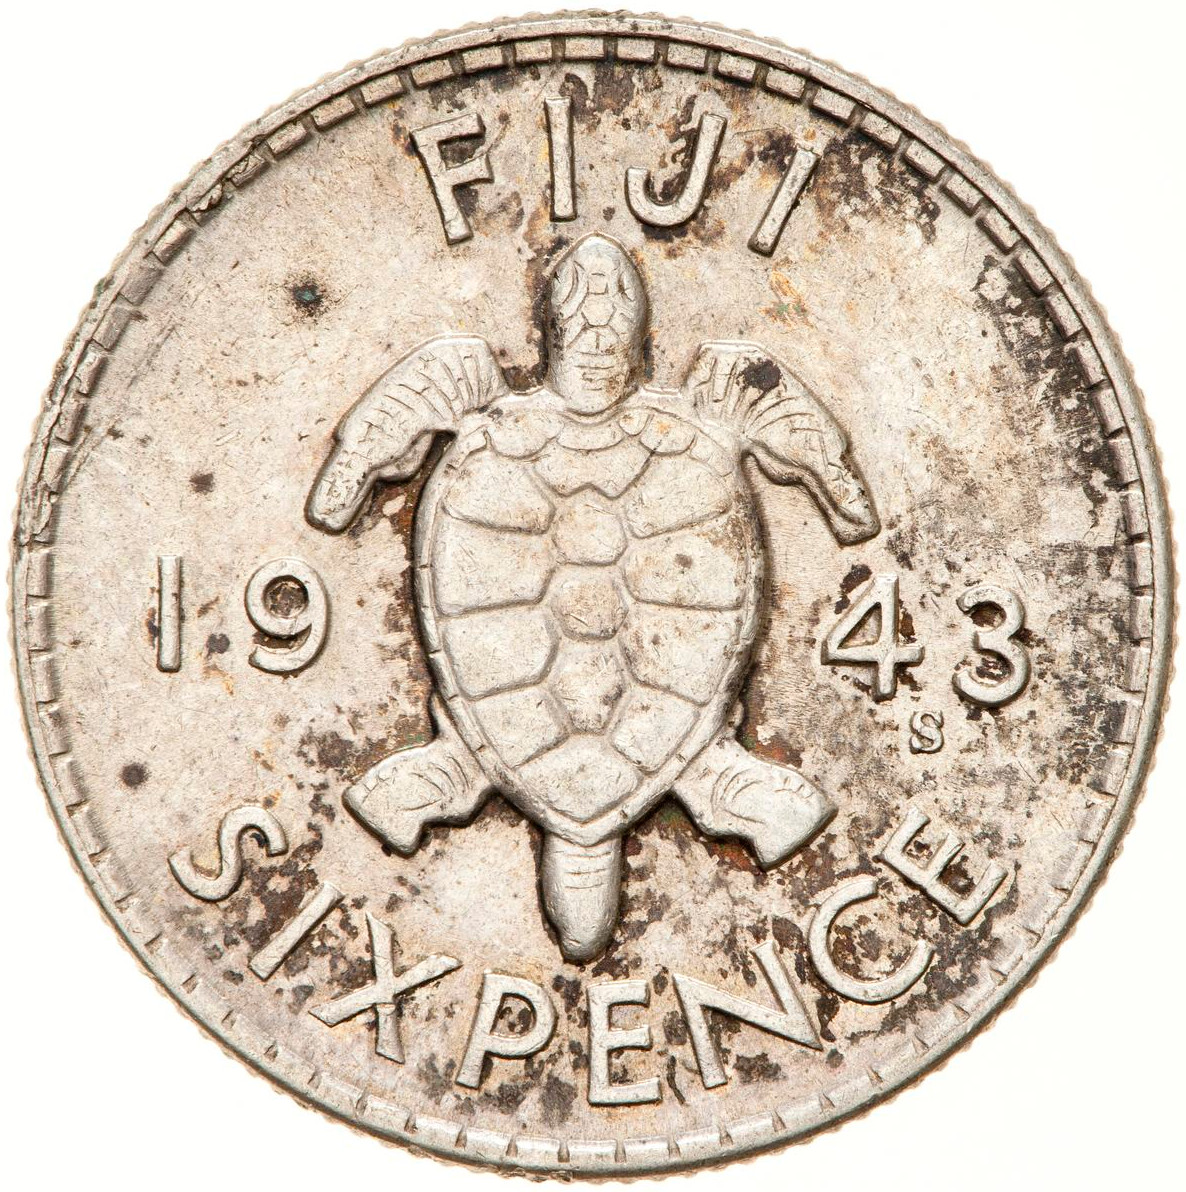 Sixpence 1943: Photo Coin - 6 Pence, Fiji, 1943